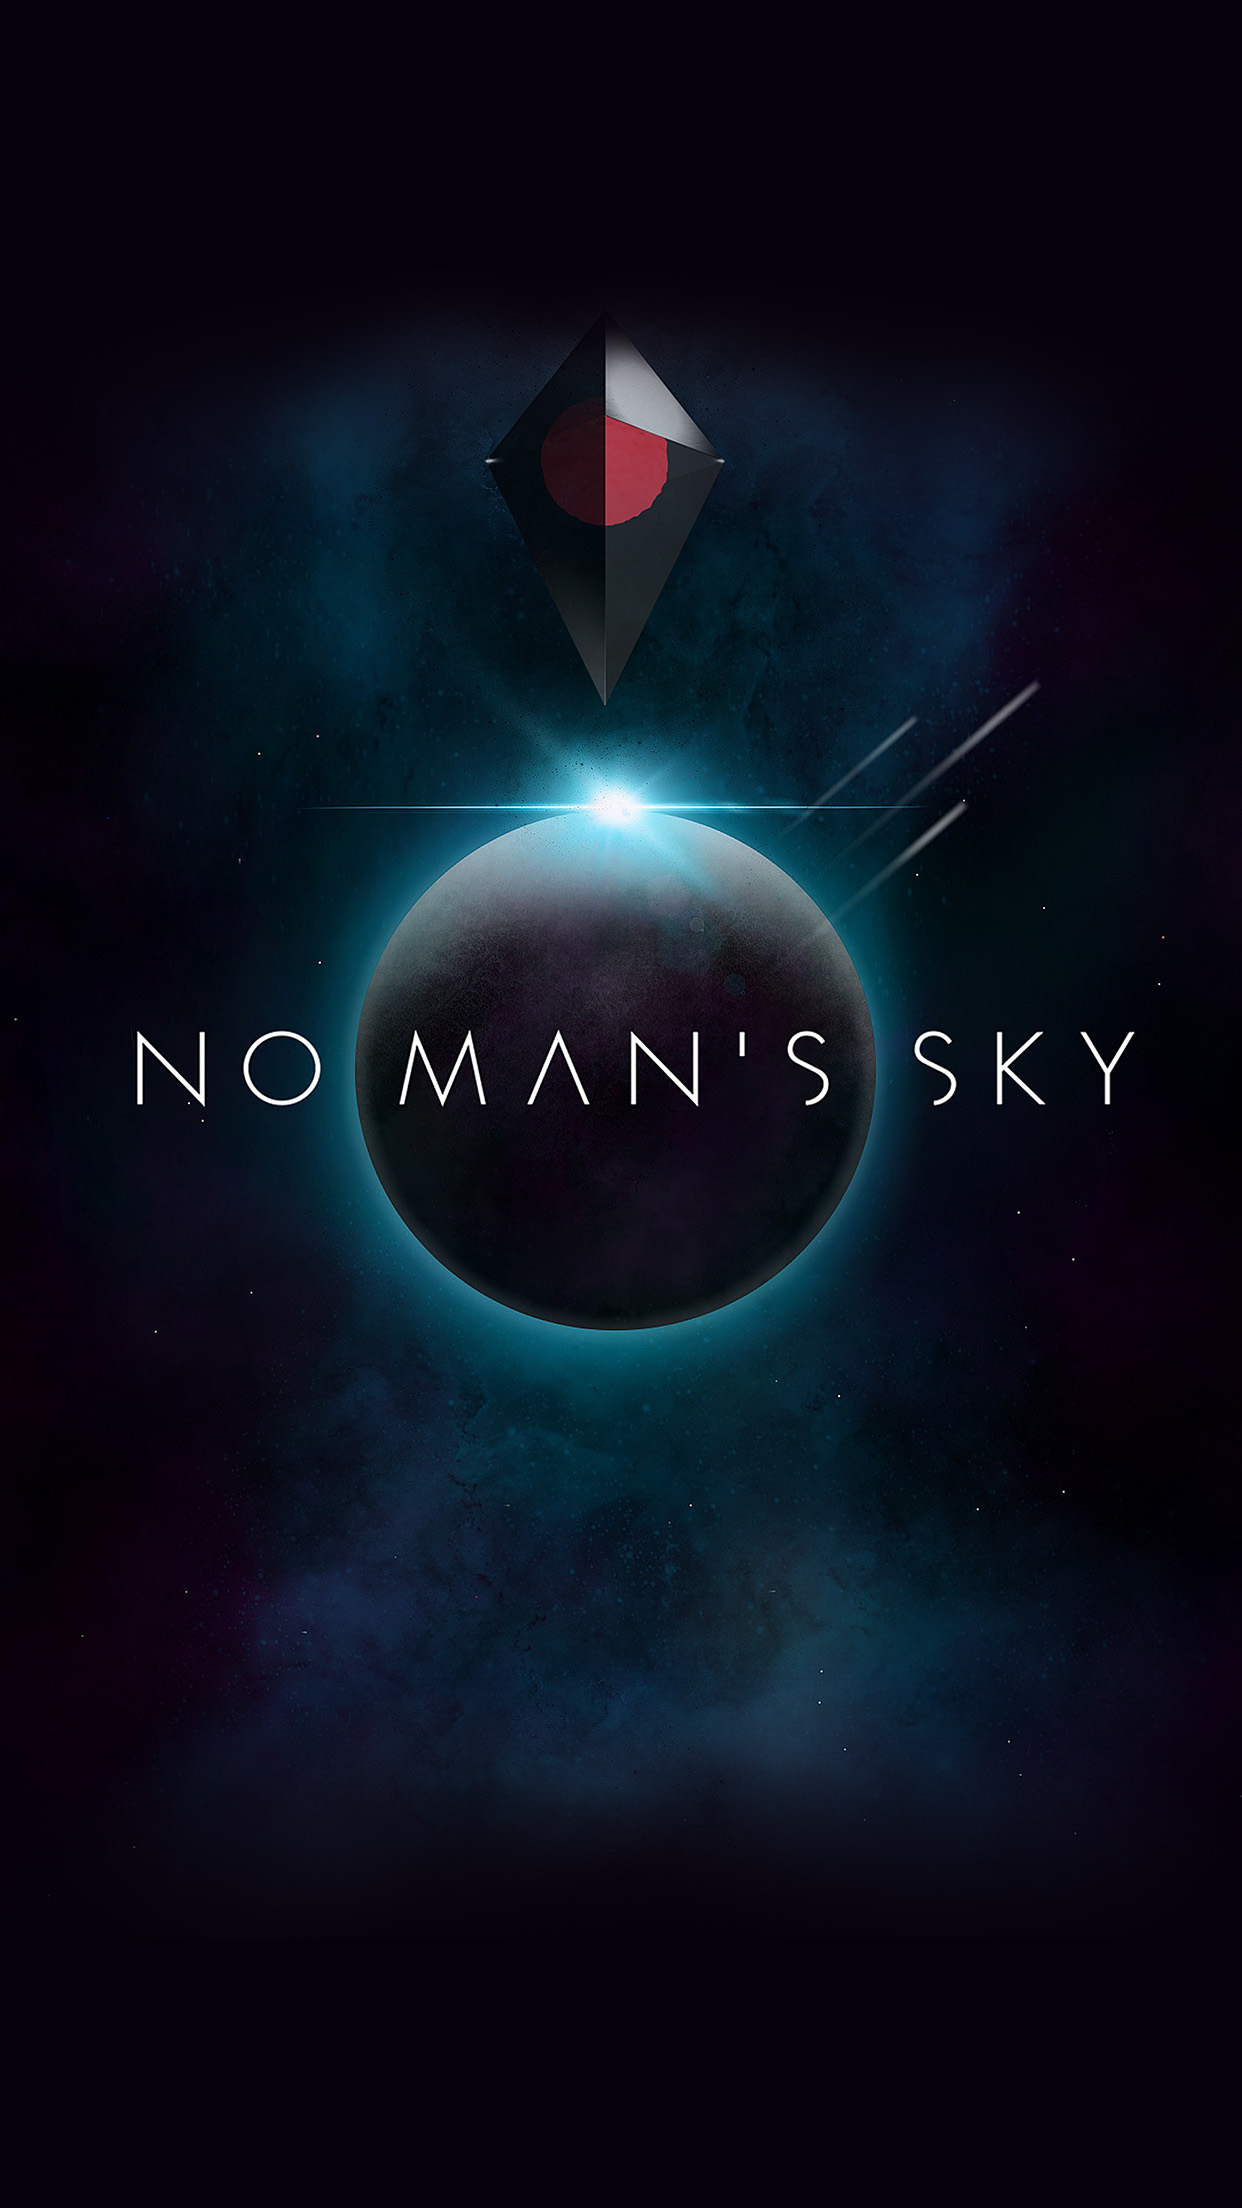 Iphone6papers Am76 No Mans Sky Art Space Dark Illust Game